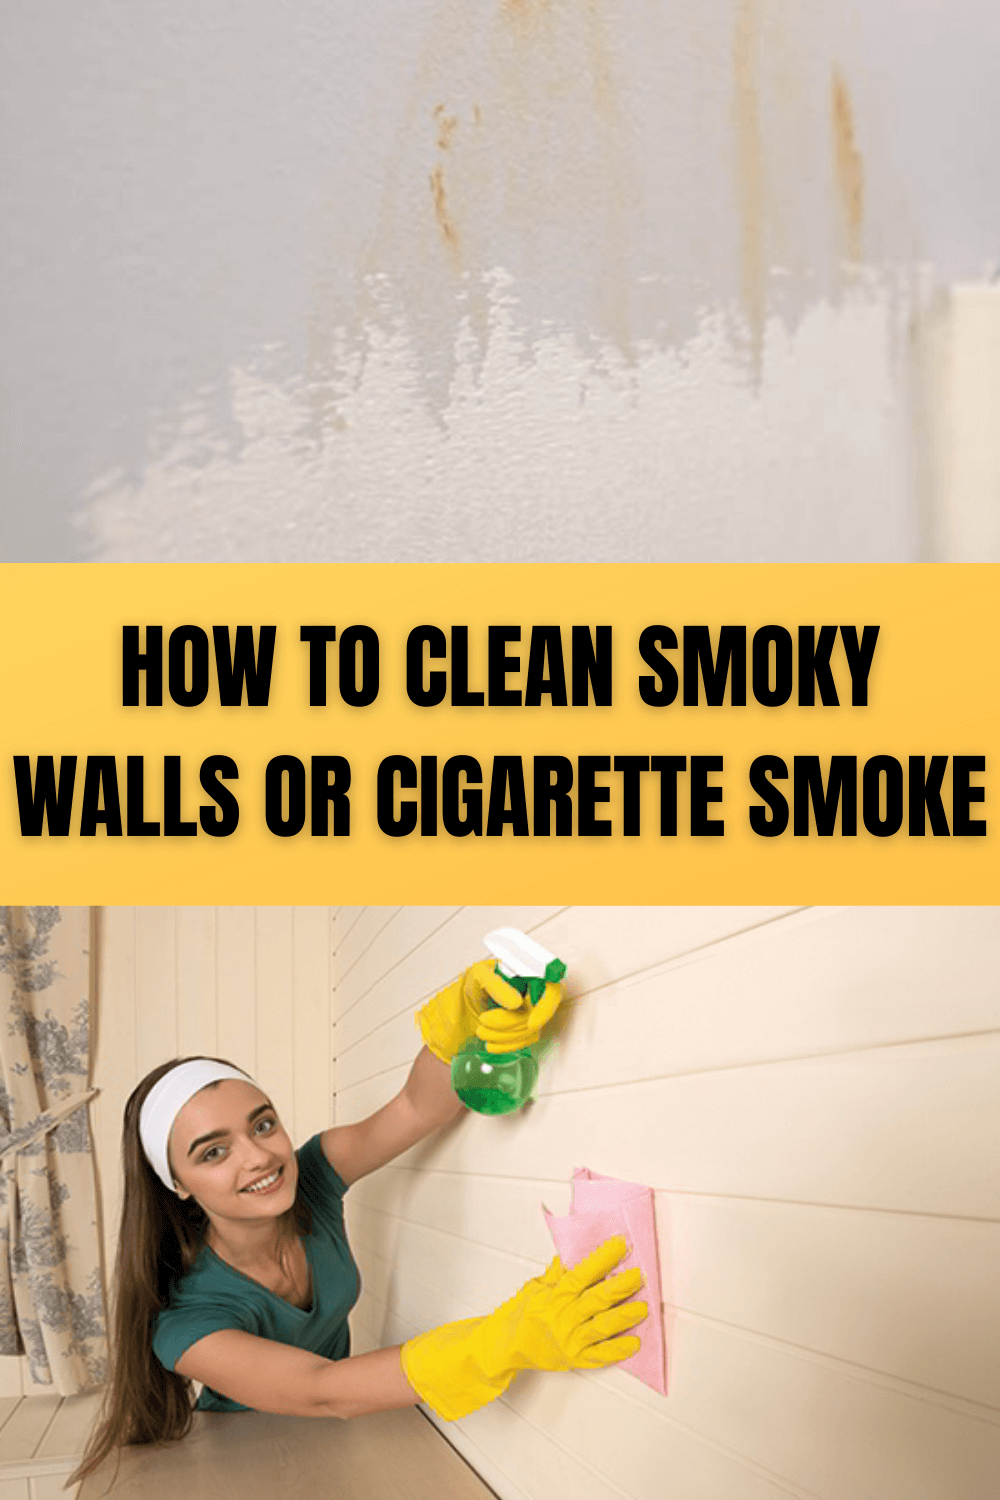 HOW TO CLEAN SMOKY WALLS OR CIGARETTE SMOKE